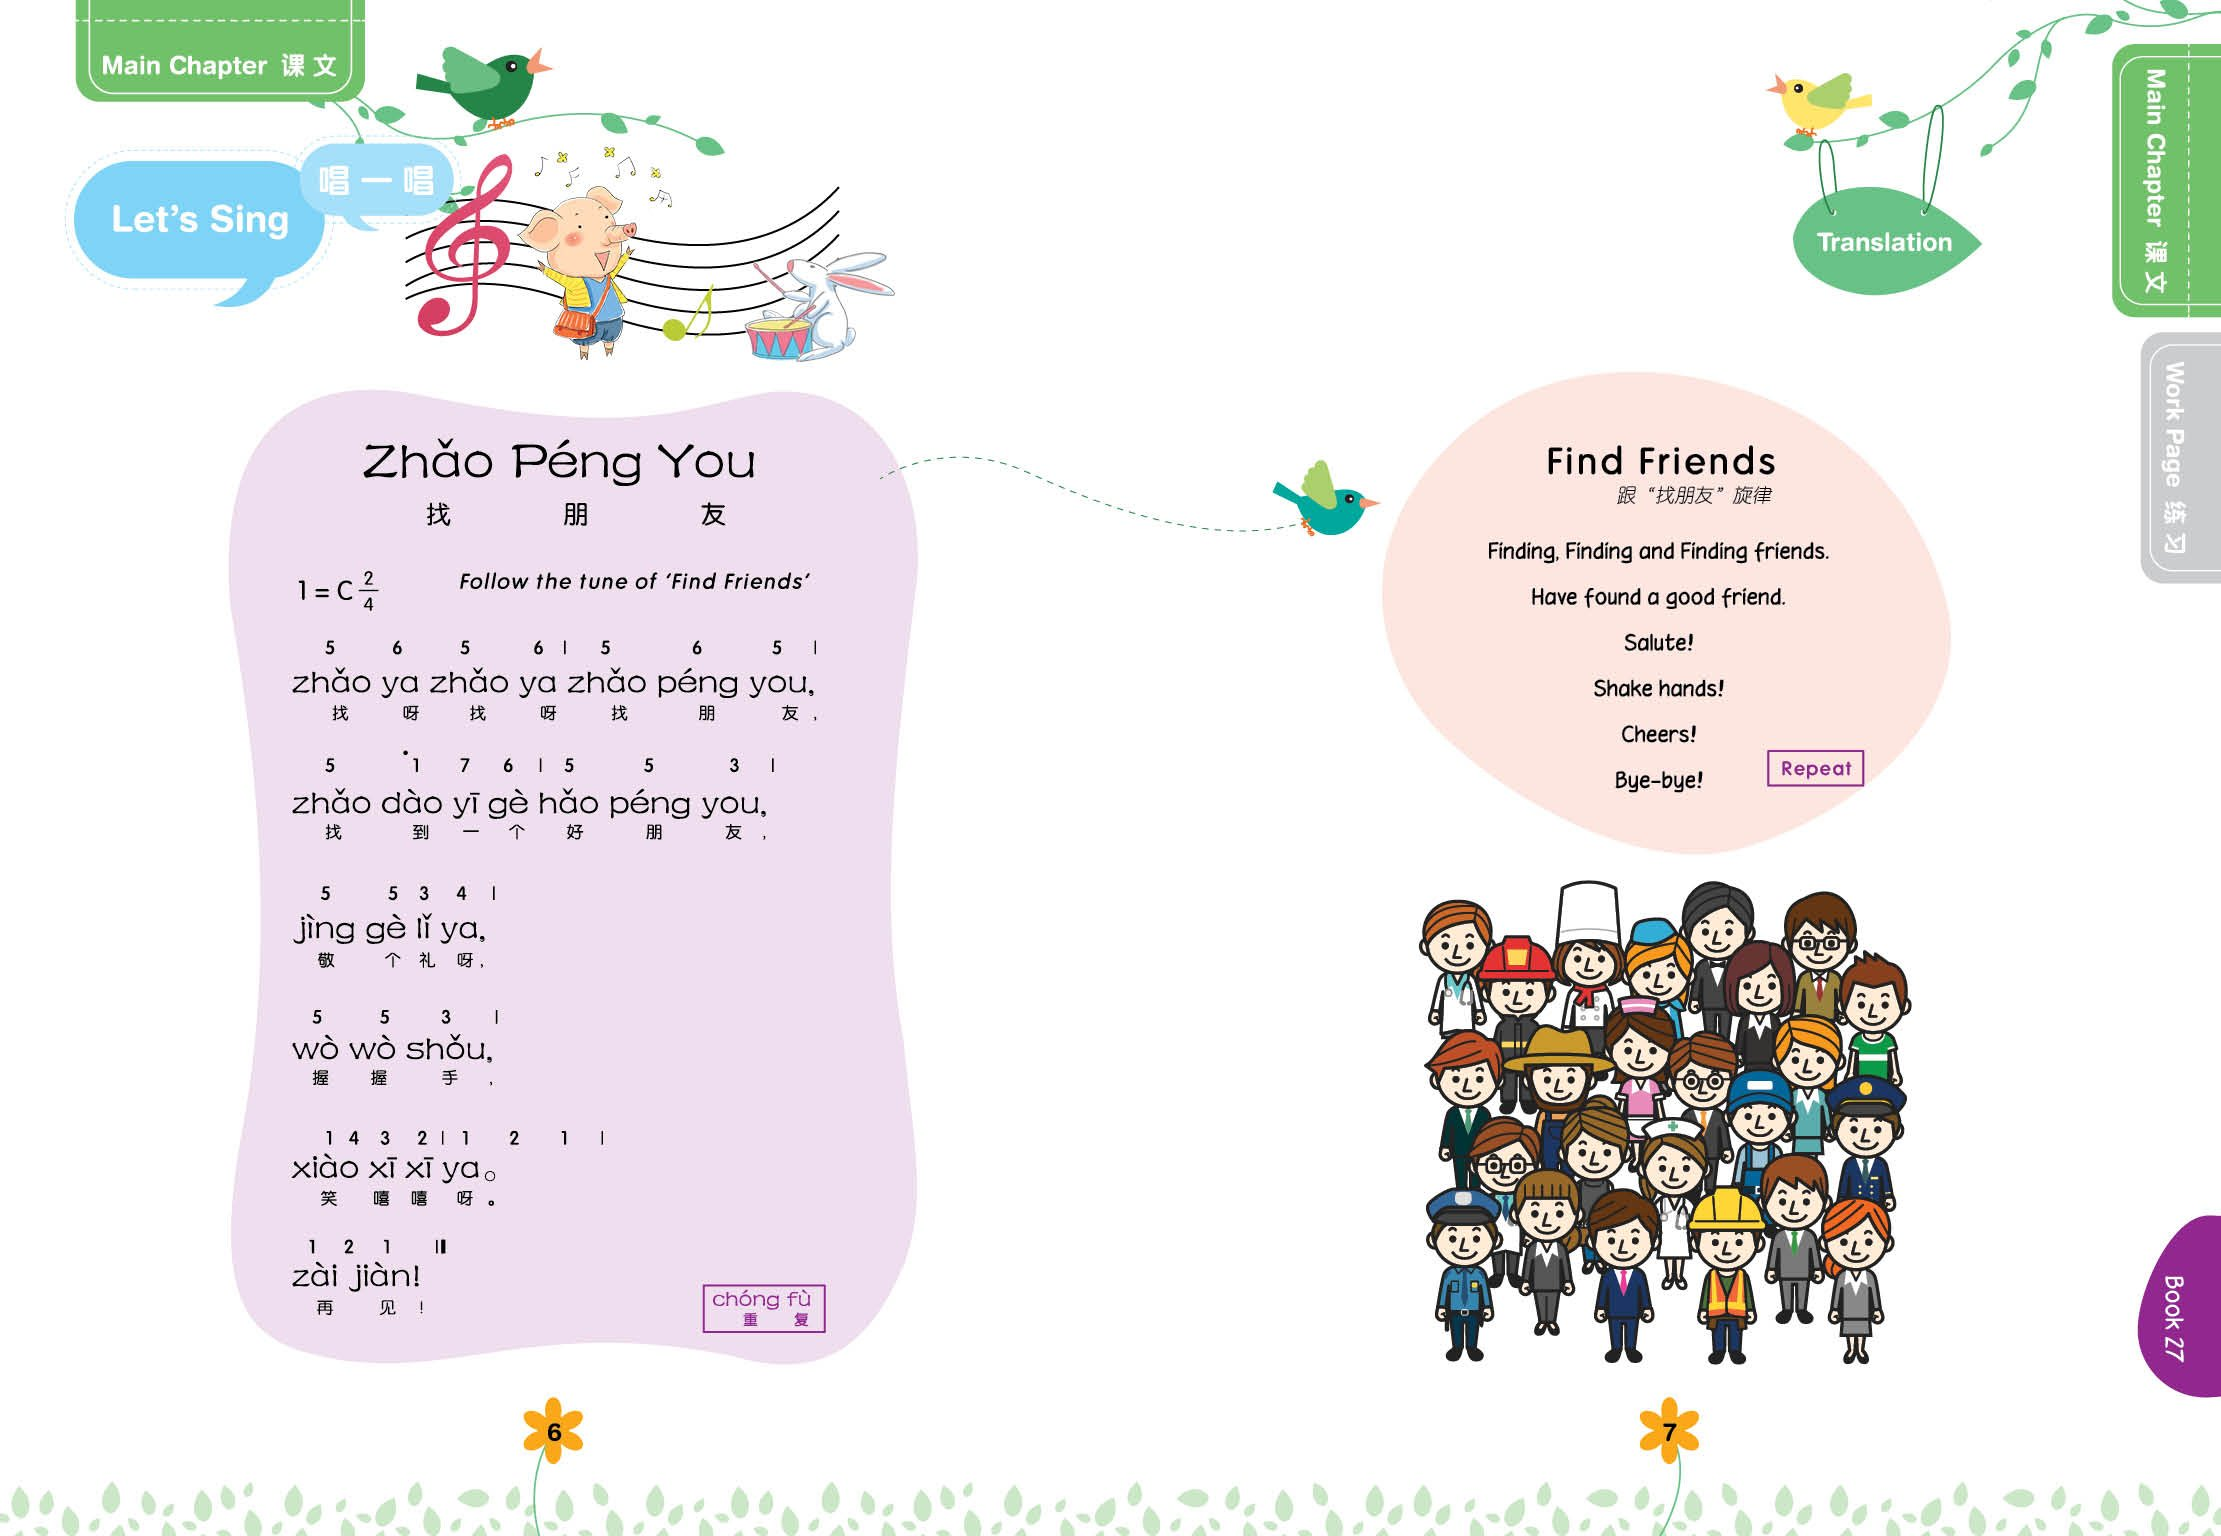 My Fun Chinese (MFC) I Can Speak Purple Set 1 (English and Chinese Edition) by Beijing Mandarin (H.K.) (Image #8)